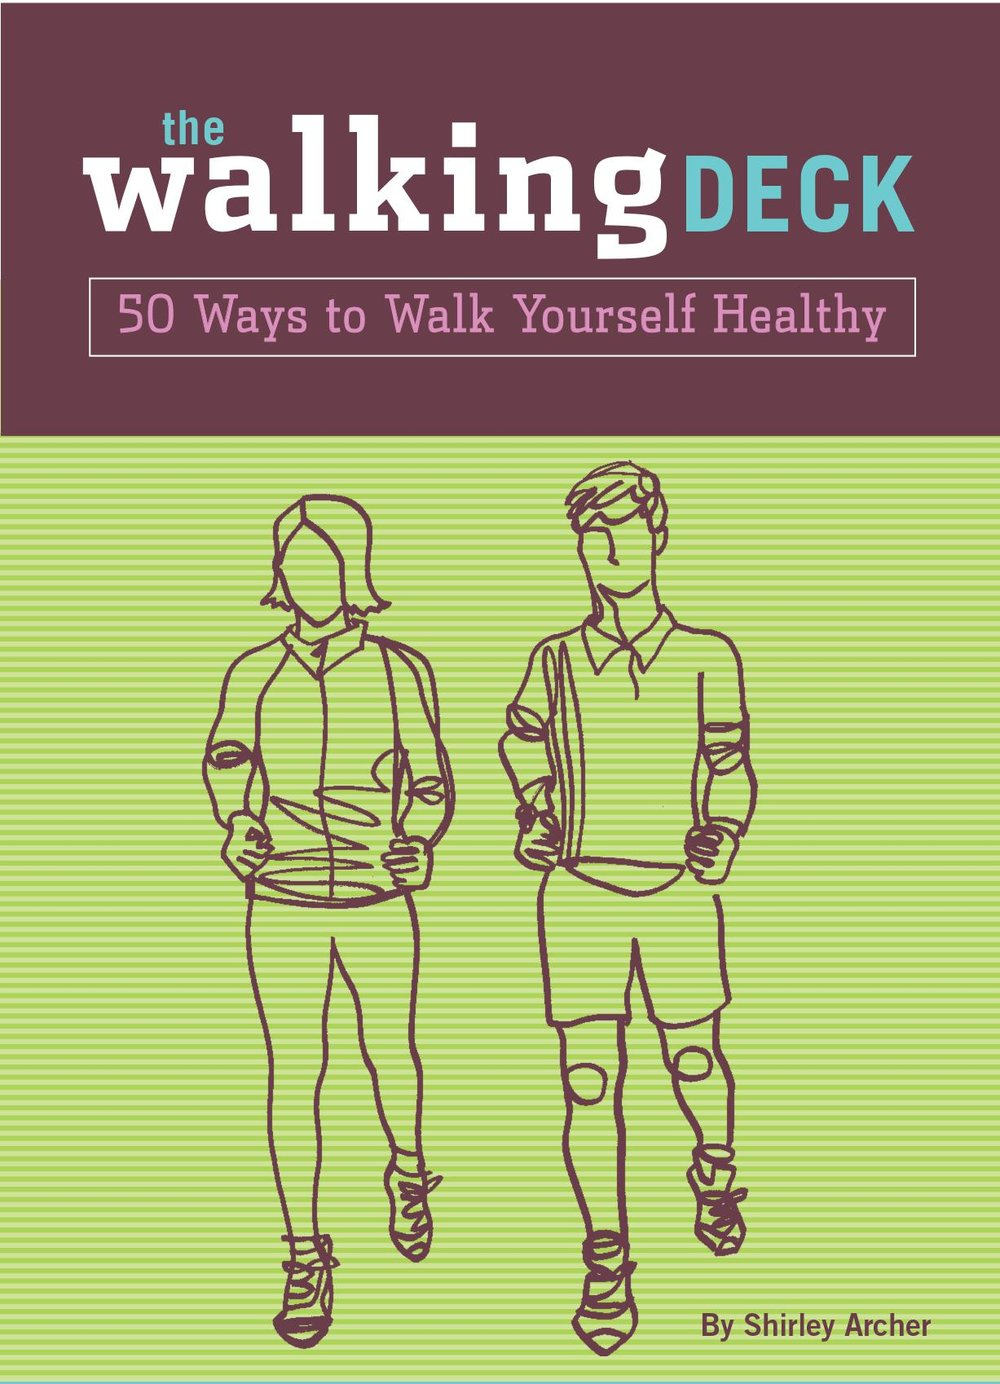 Walking Deck.jpg